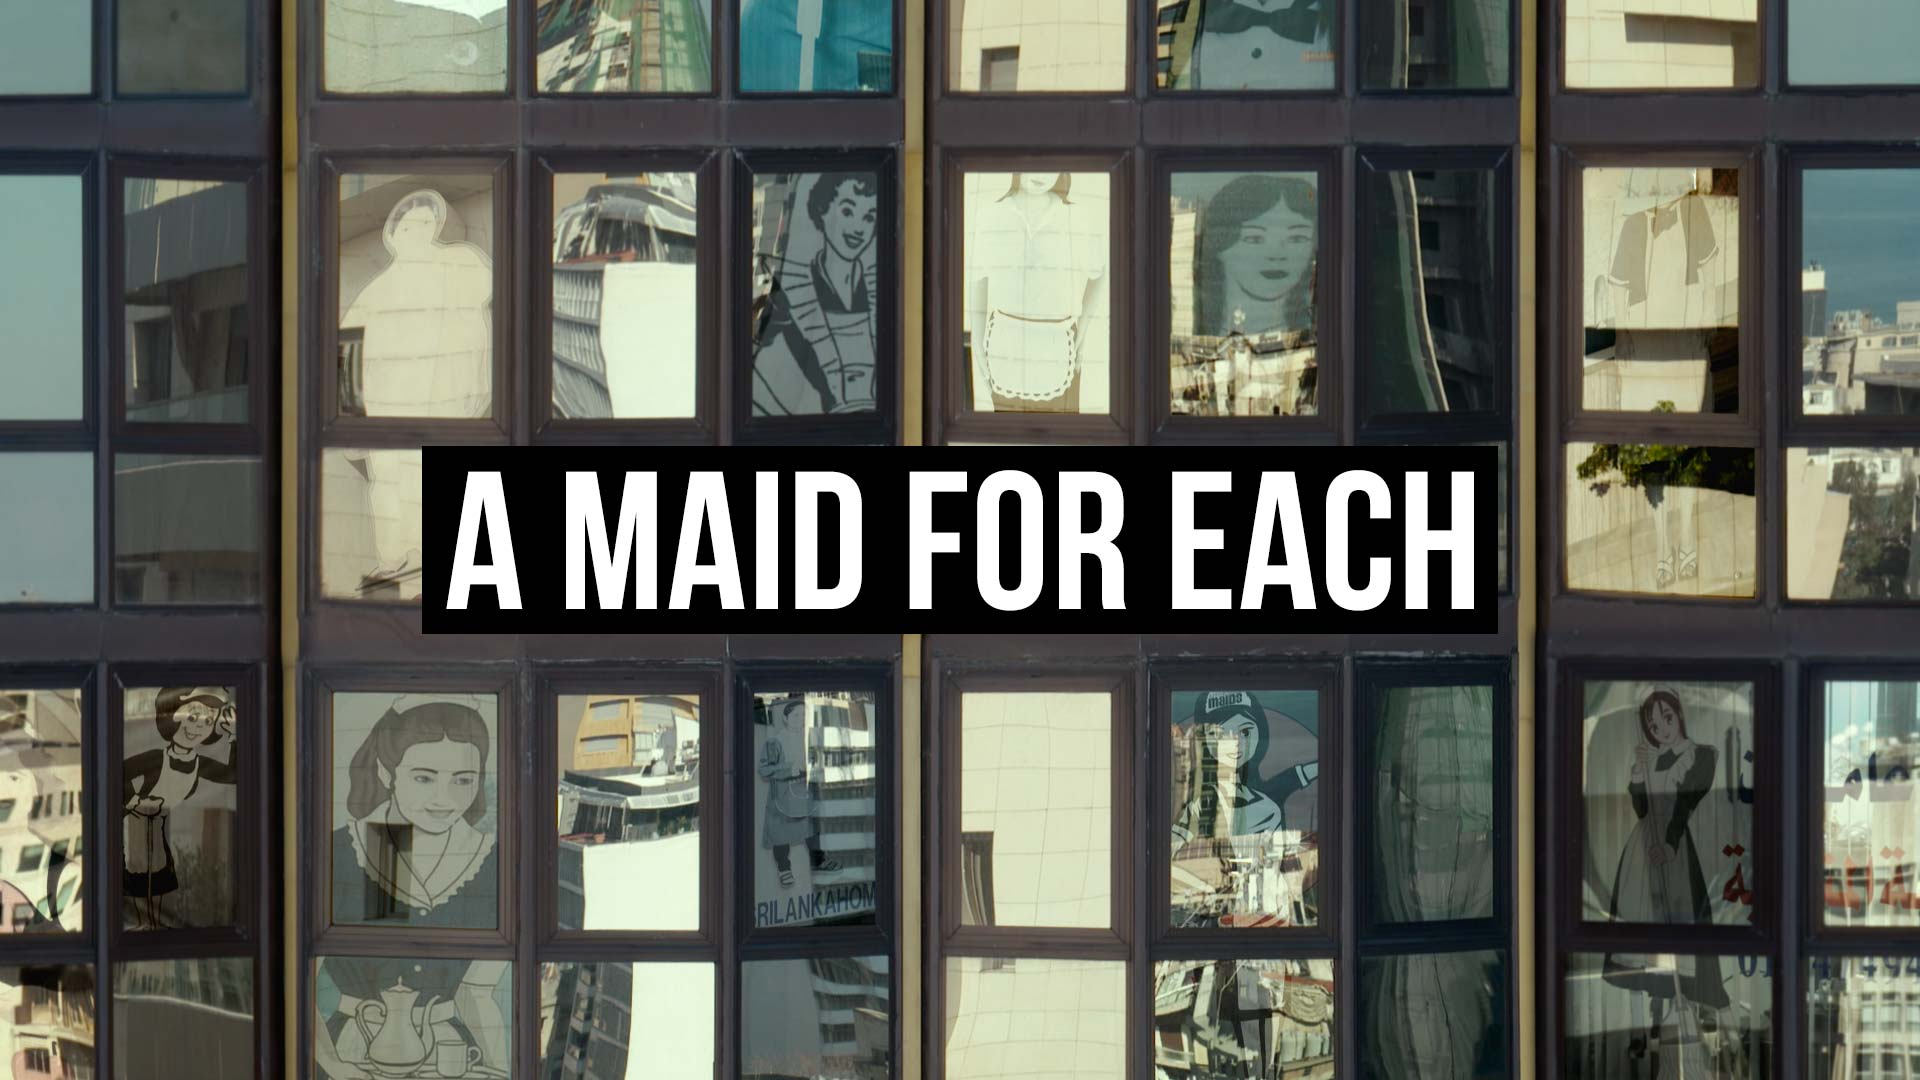 A Maid for Each - image